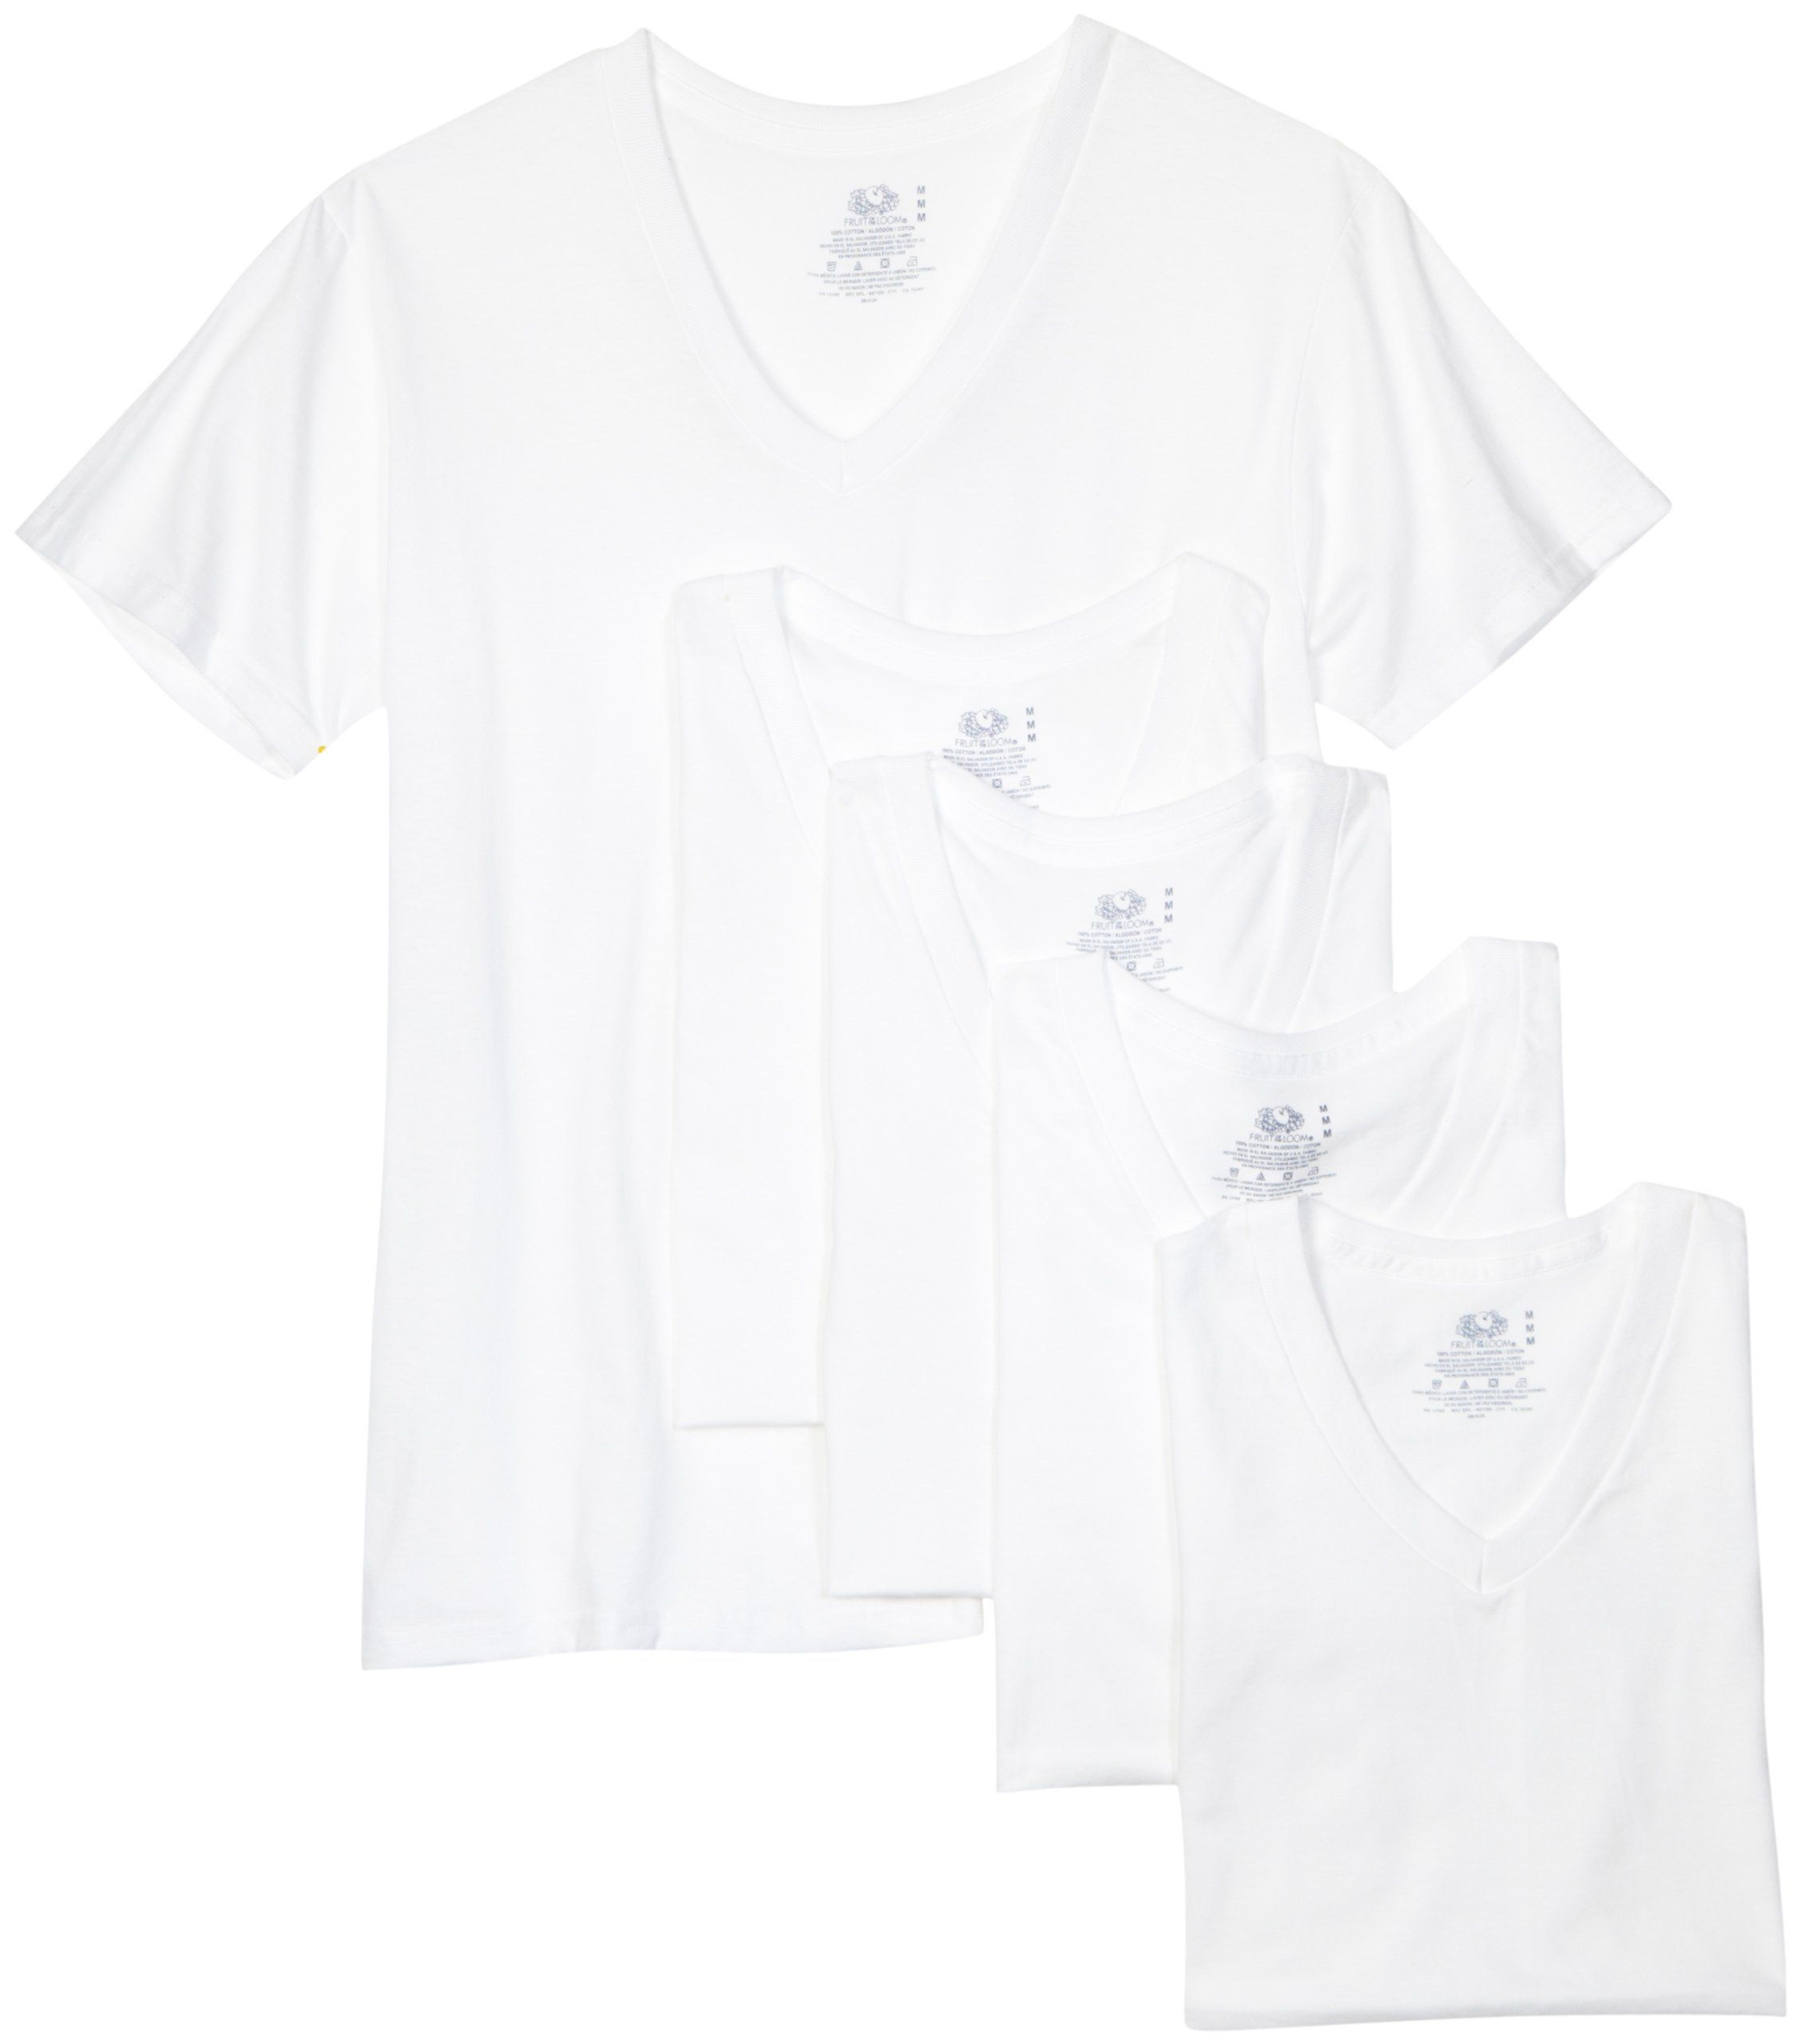 Fruit of the loom mens vneck tee pack of 5 at amazon